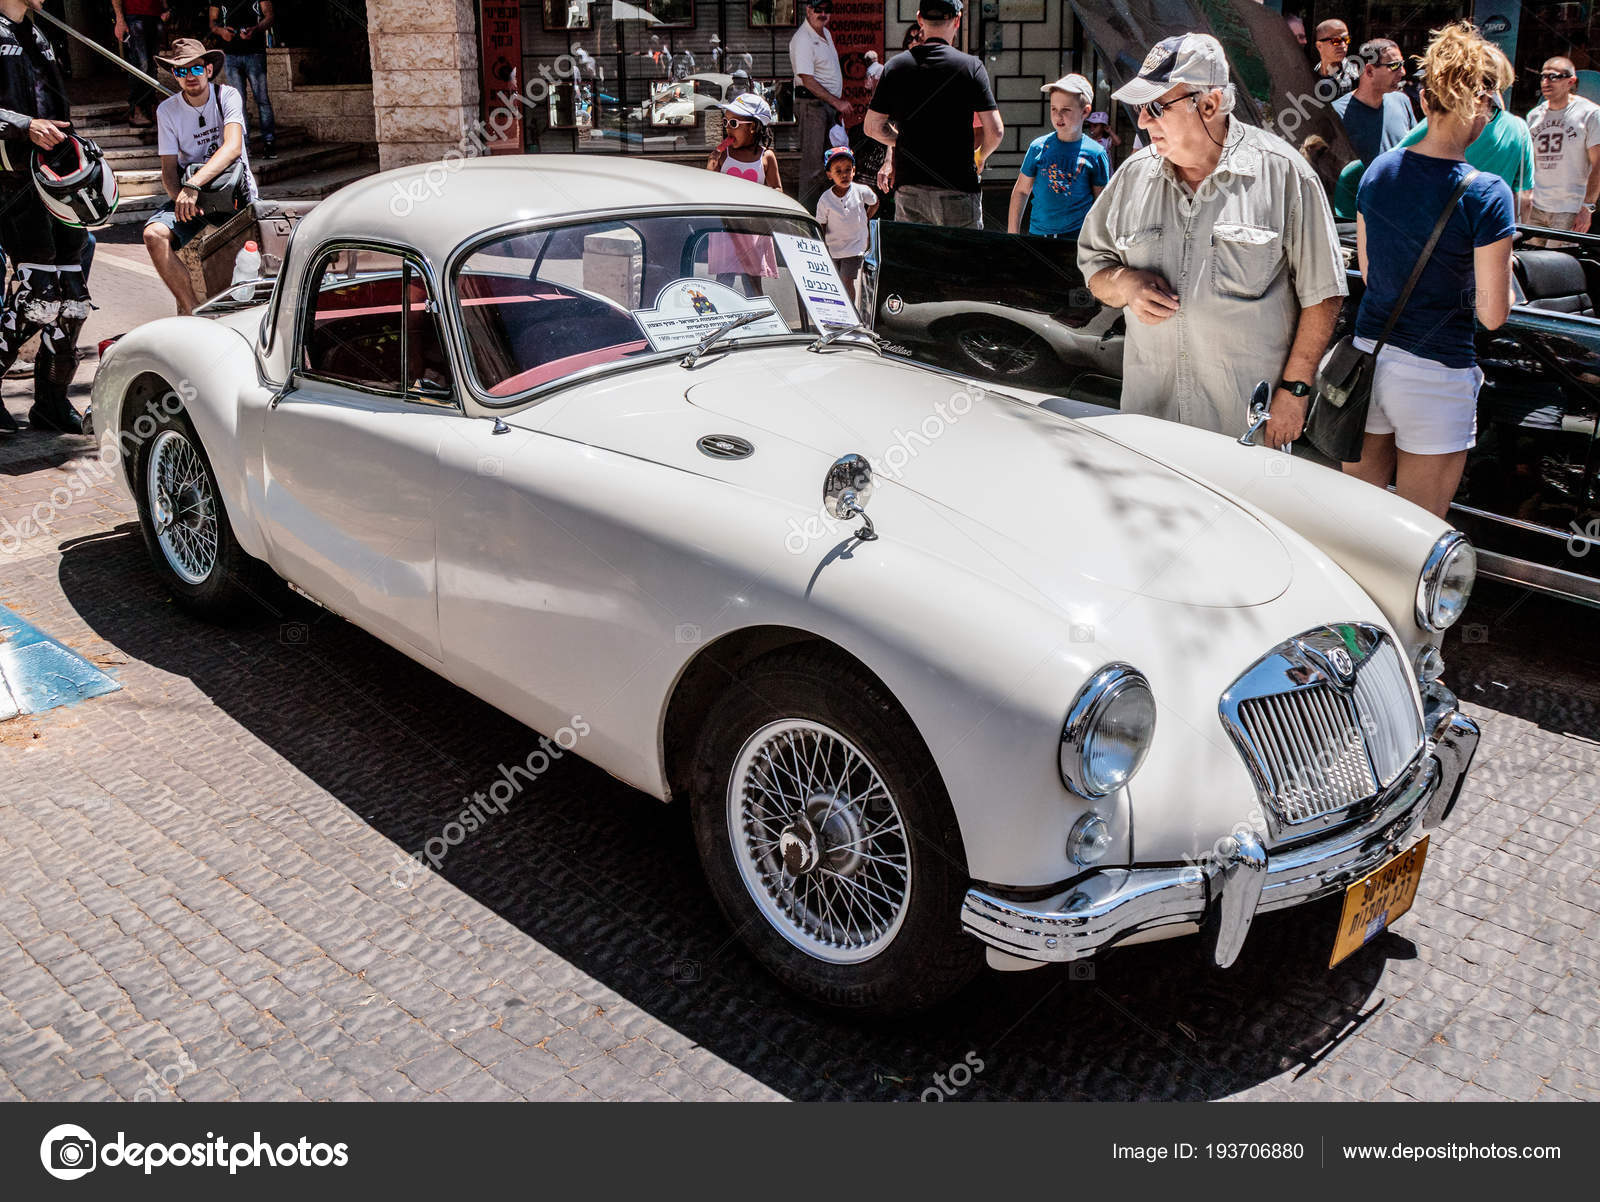 Old MG Coupe 1959 at an exhibition of old cars in the